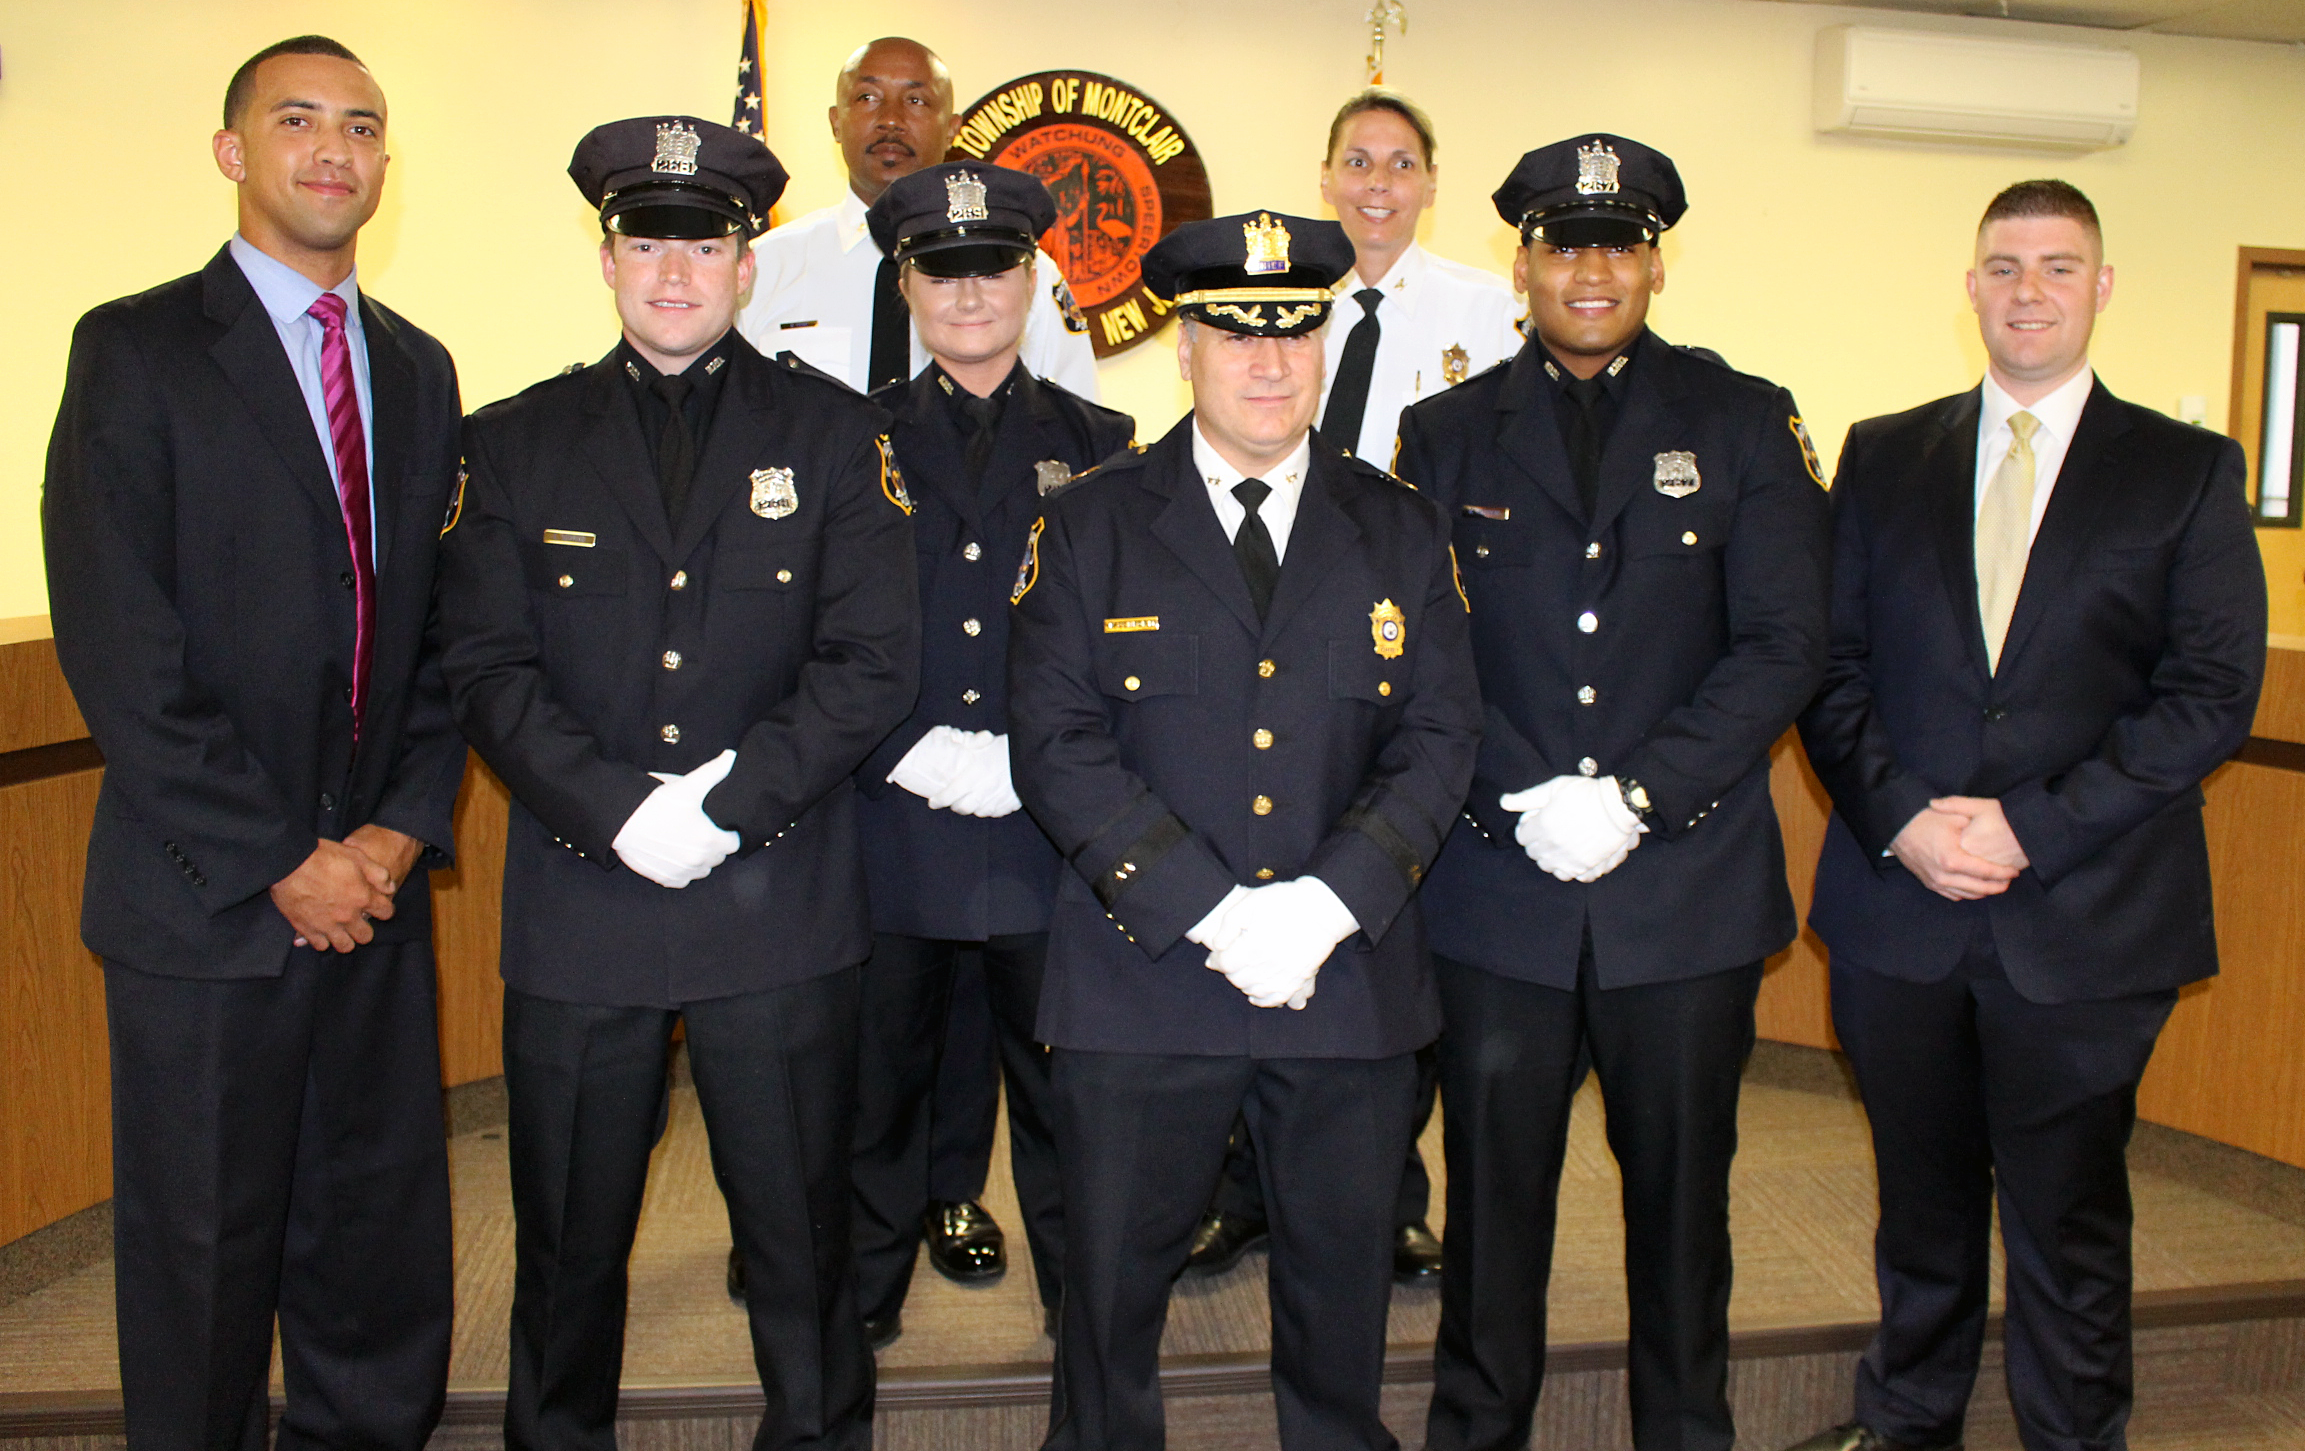 a234d4ad5d4c0da47c59_MPD-officers-11-03-16.jpg